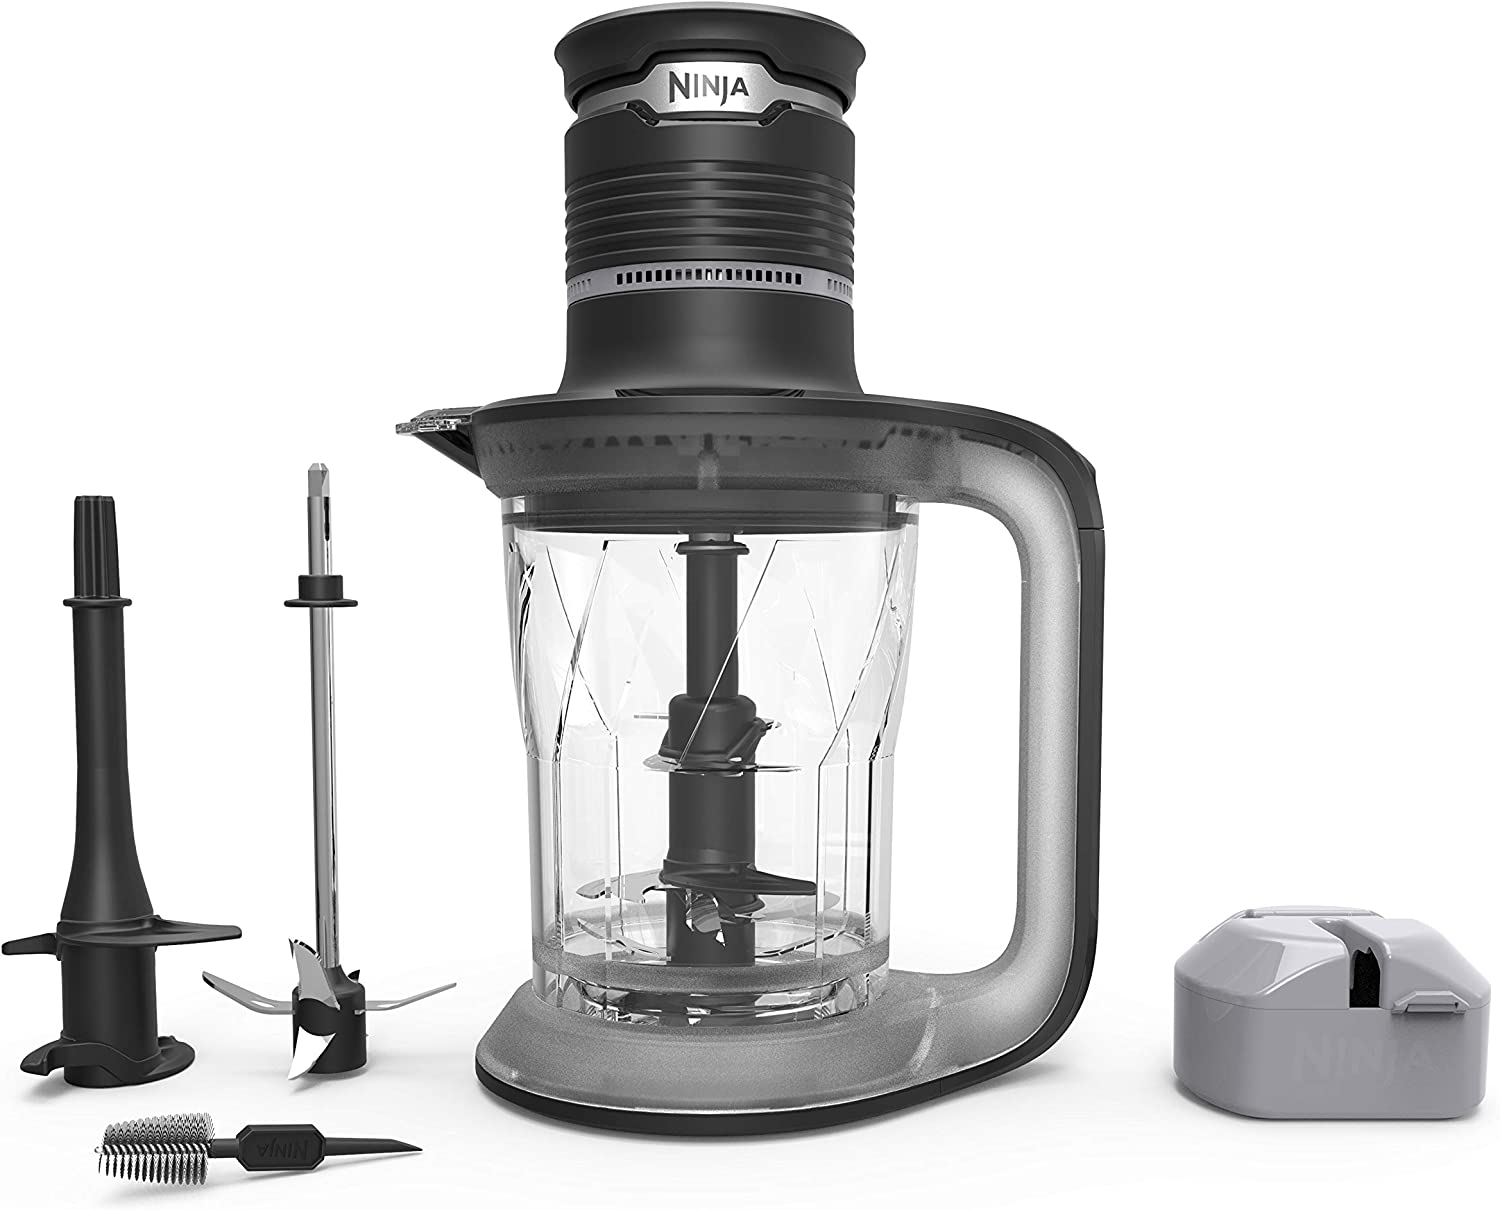 Ninja Ultra Prep Food Processor and Blender with Lightweight 700 Watt Power Pod for Dough, Smoothies, Chopping, Blending PS101 , Black Clear